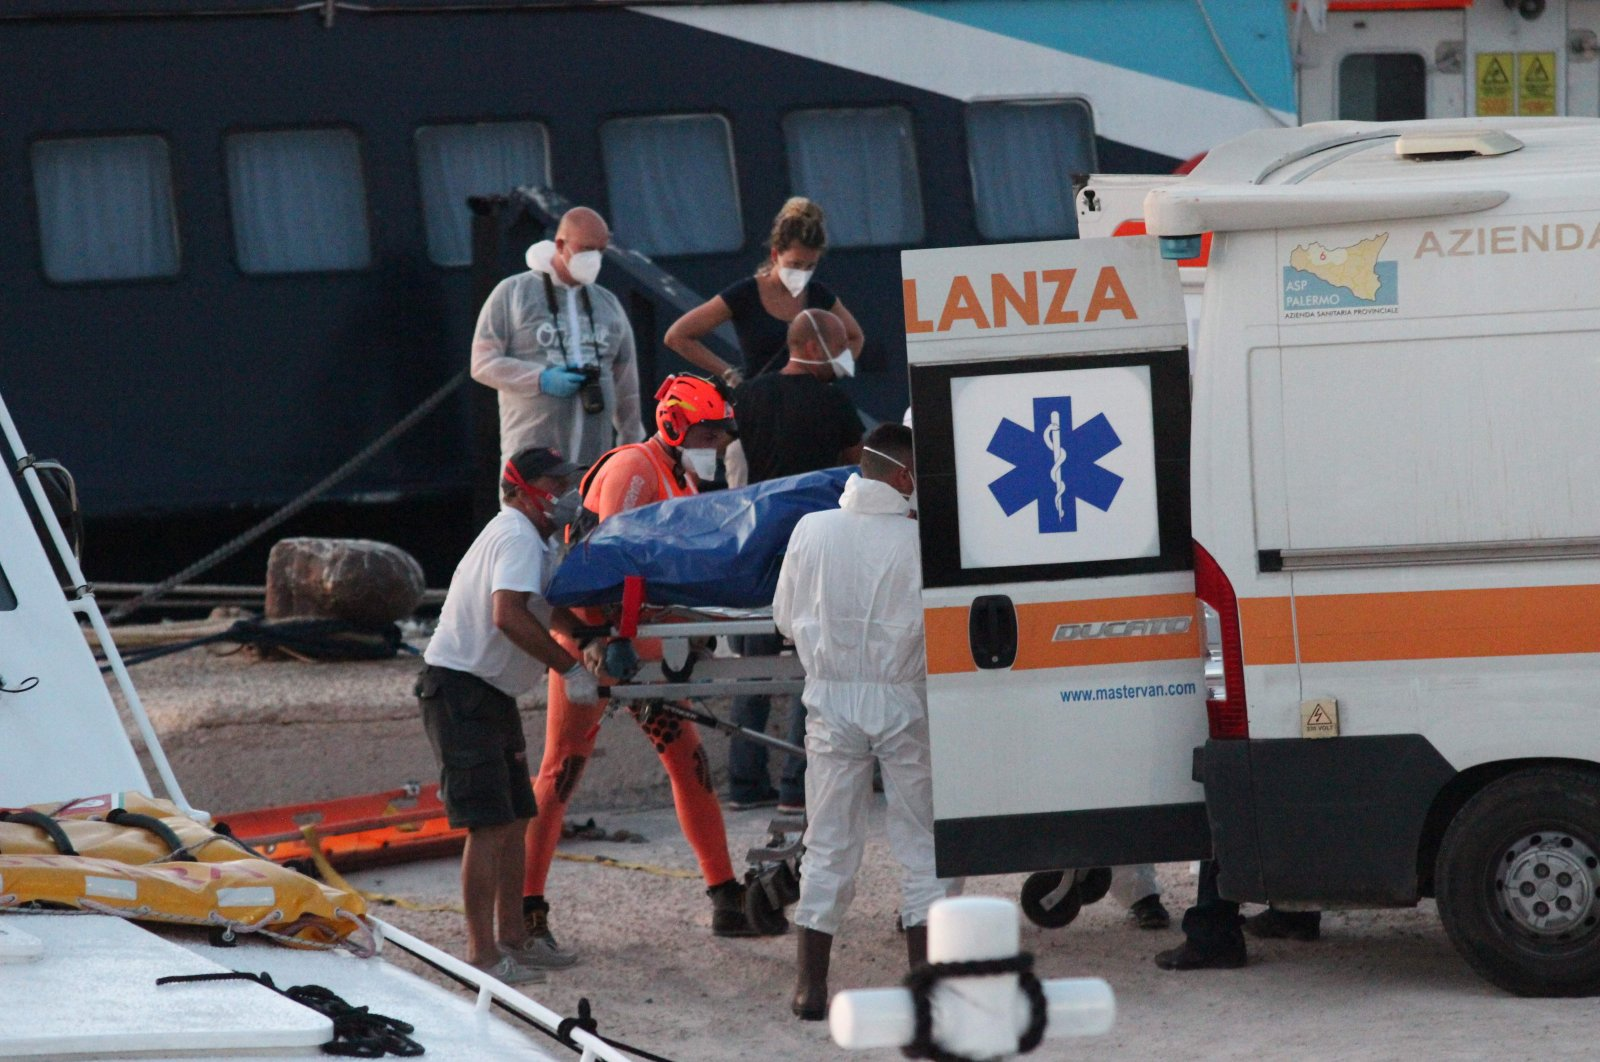 """The body of a dead migrant wrapped in a blue bag is being put into an ambulance, after some 49 rescued migrants arrived at the commercial port of Lampedusa from the Coast Guard patrol boat """"CP-319"""" (Rear R), which transhipped rescued migrants from the civilian rescue boat """"Louise Michel"""" 80 kilometers southeast of the Italian pelagic island, Aug. 29, 2020.  (AFP Photo)"""